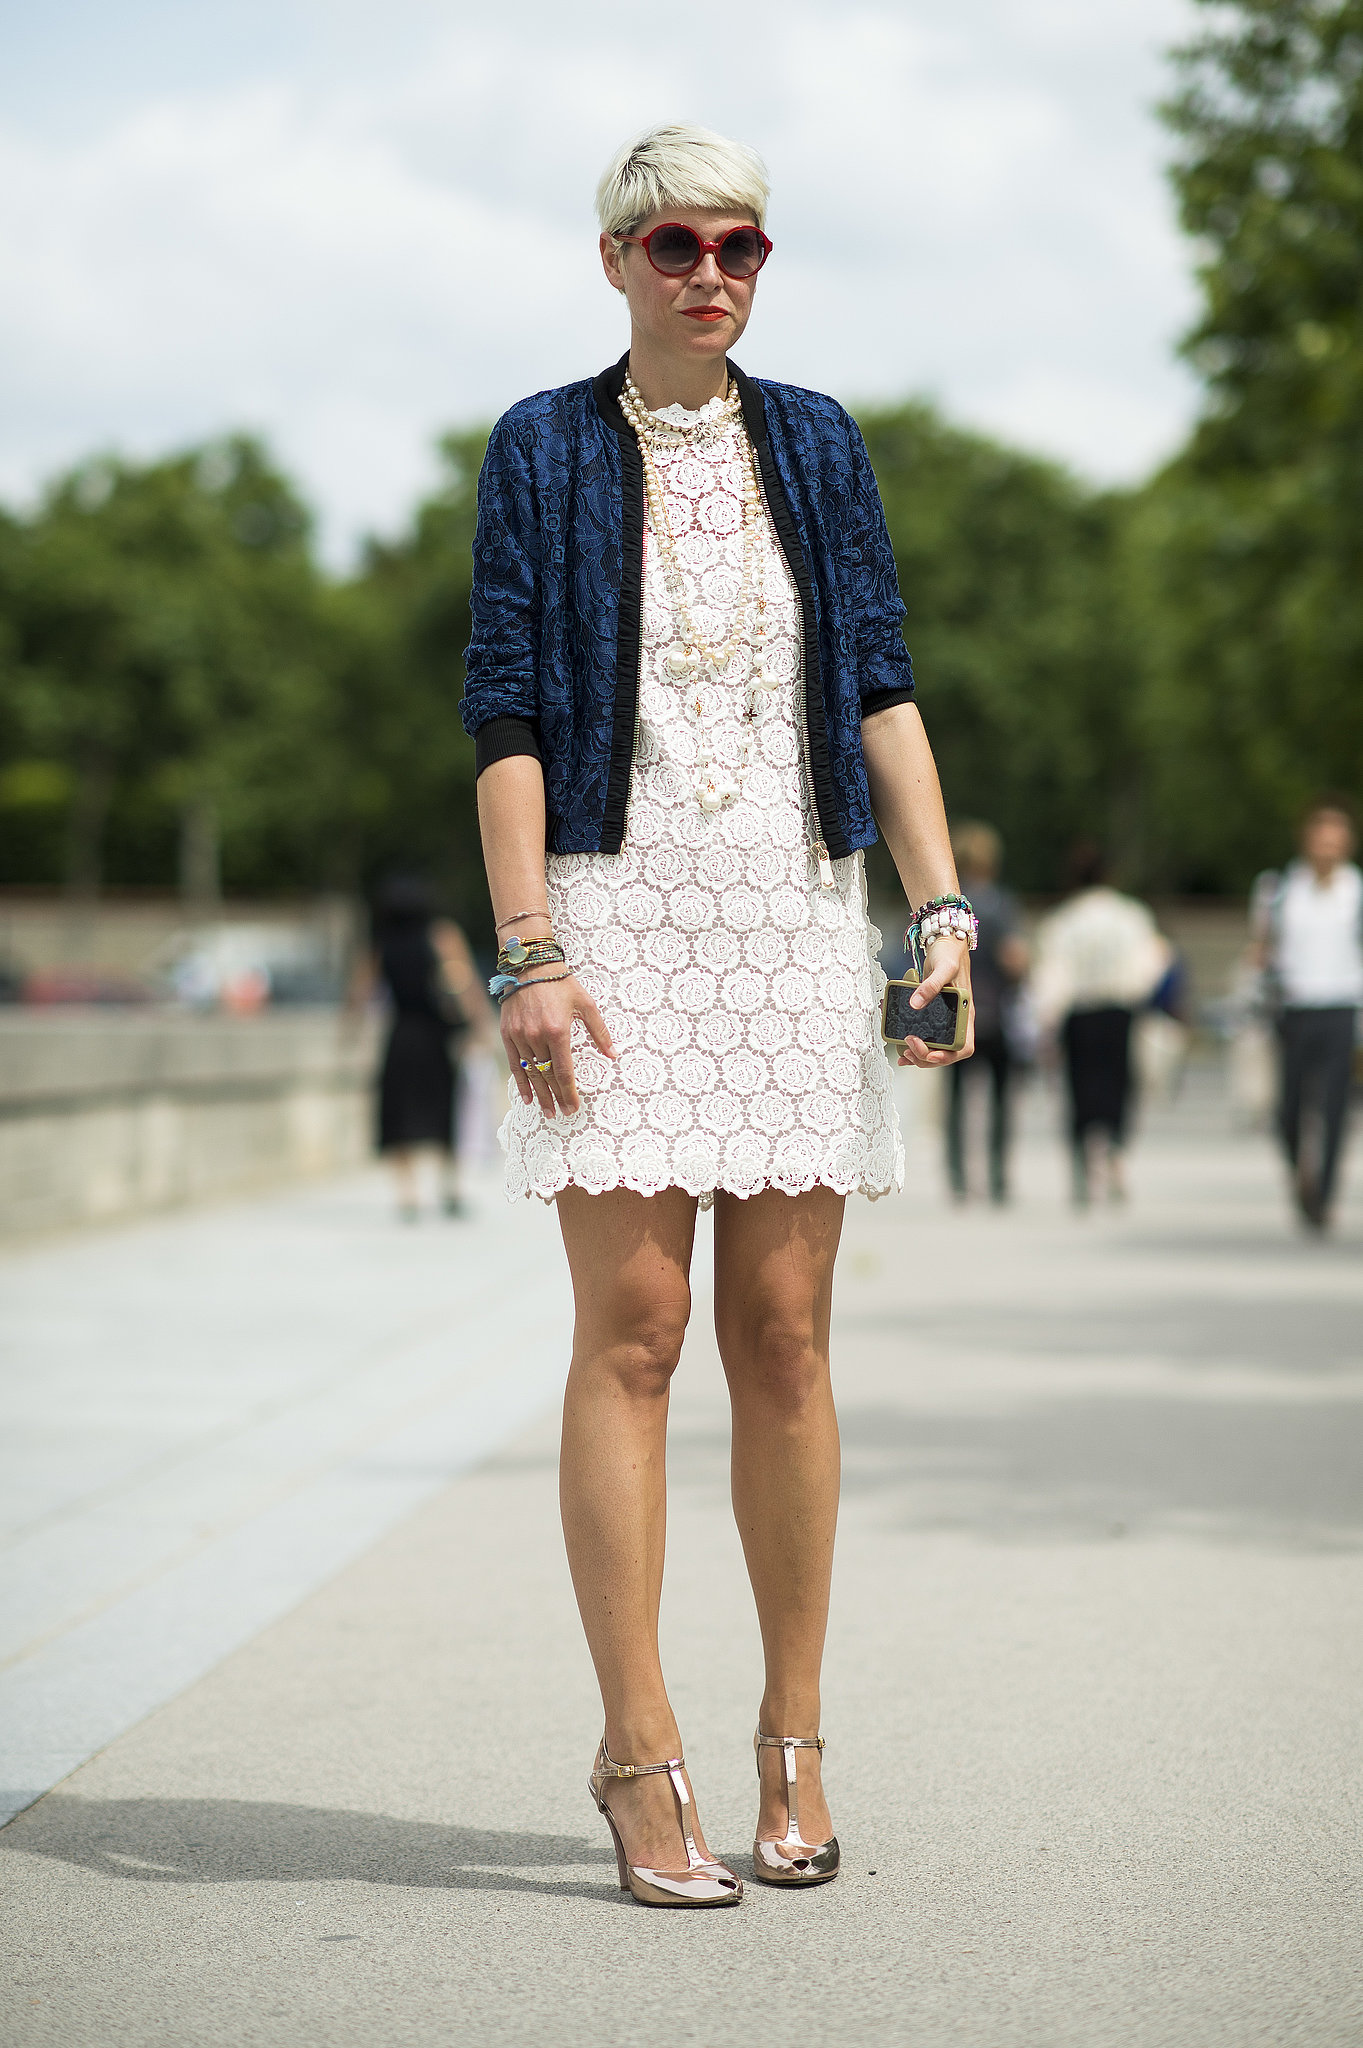 Elisa Nalin made a lacy LWD show-worthy with a deep blue jacket, metallic heels, and loads of pearls. Source: Le 21ème | Adam Katz Sinding